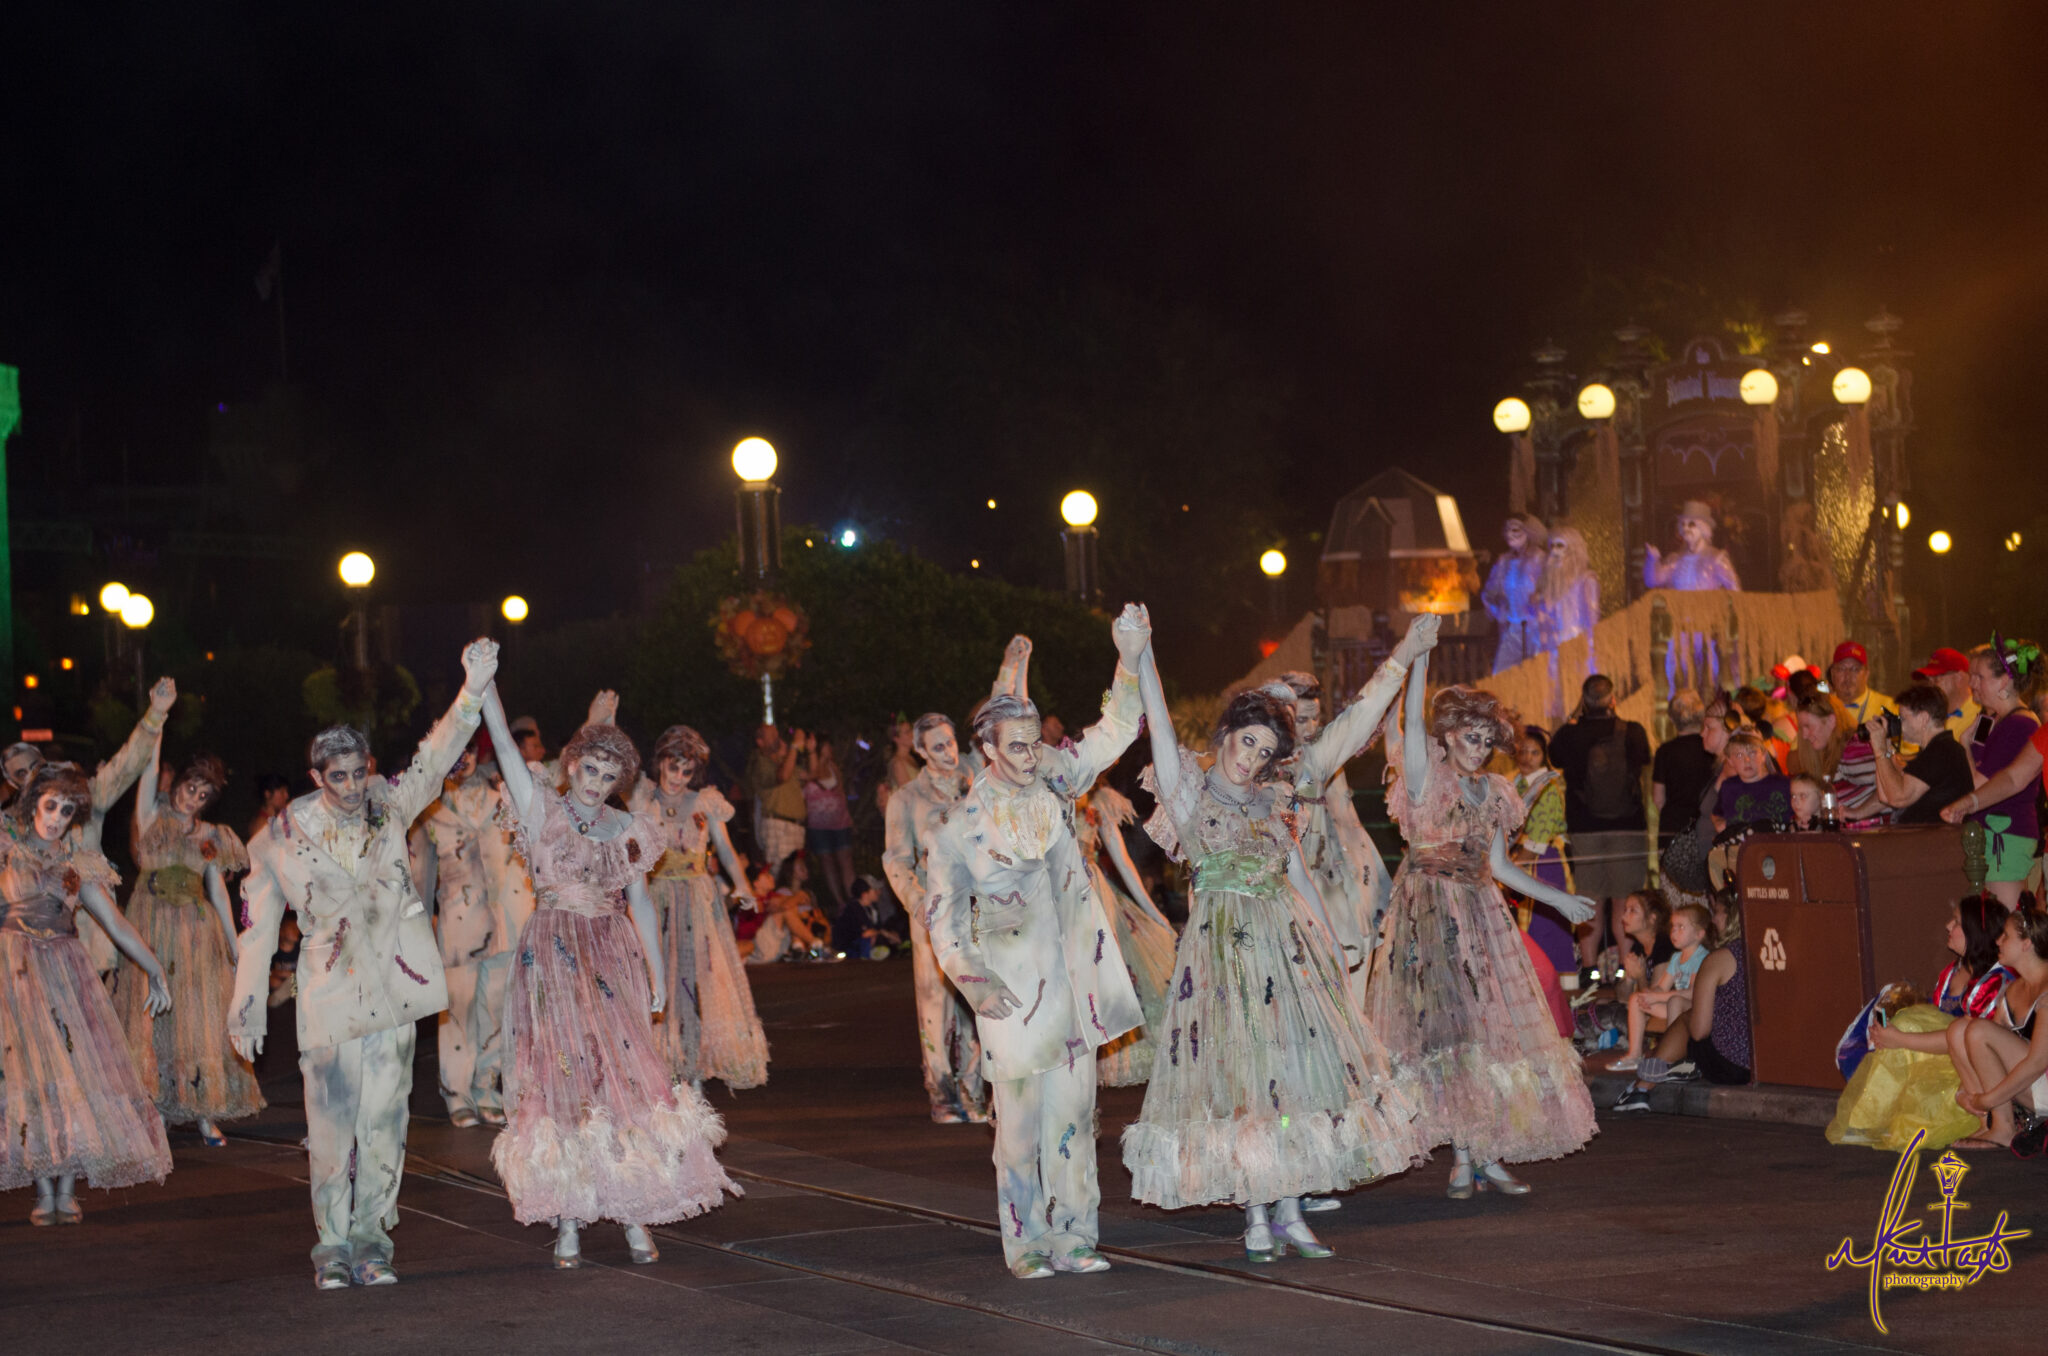 Ghostly haunts dancing at the Boo to You Parade.